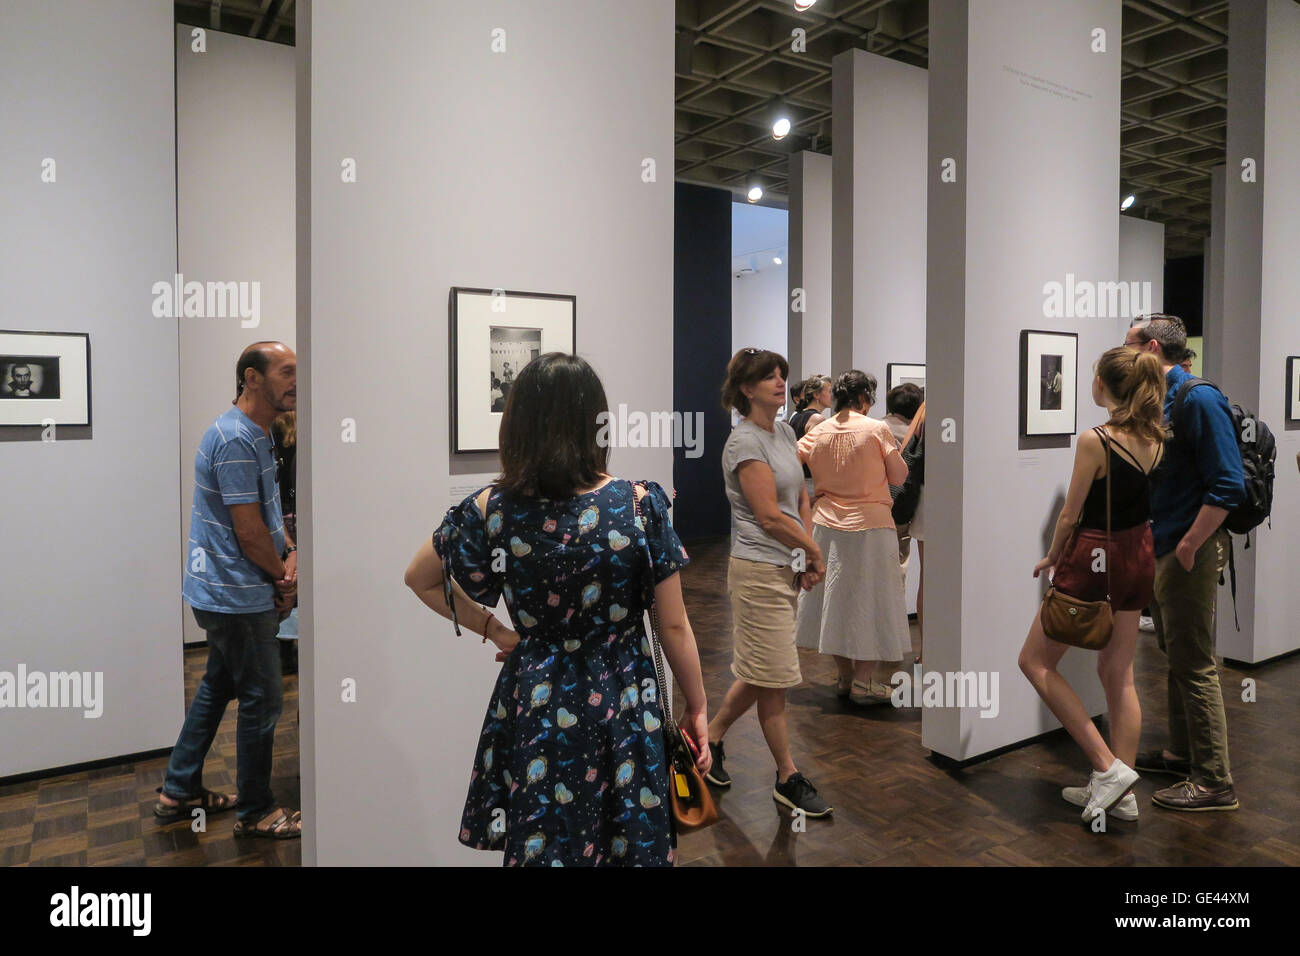 Metropolitan Museum of Art Breuer, NYC - Stock Image